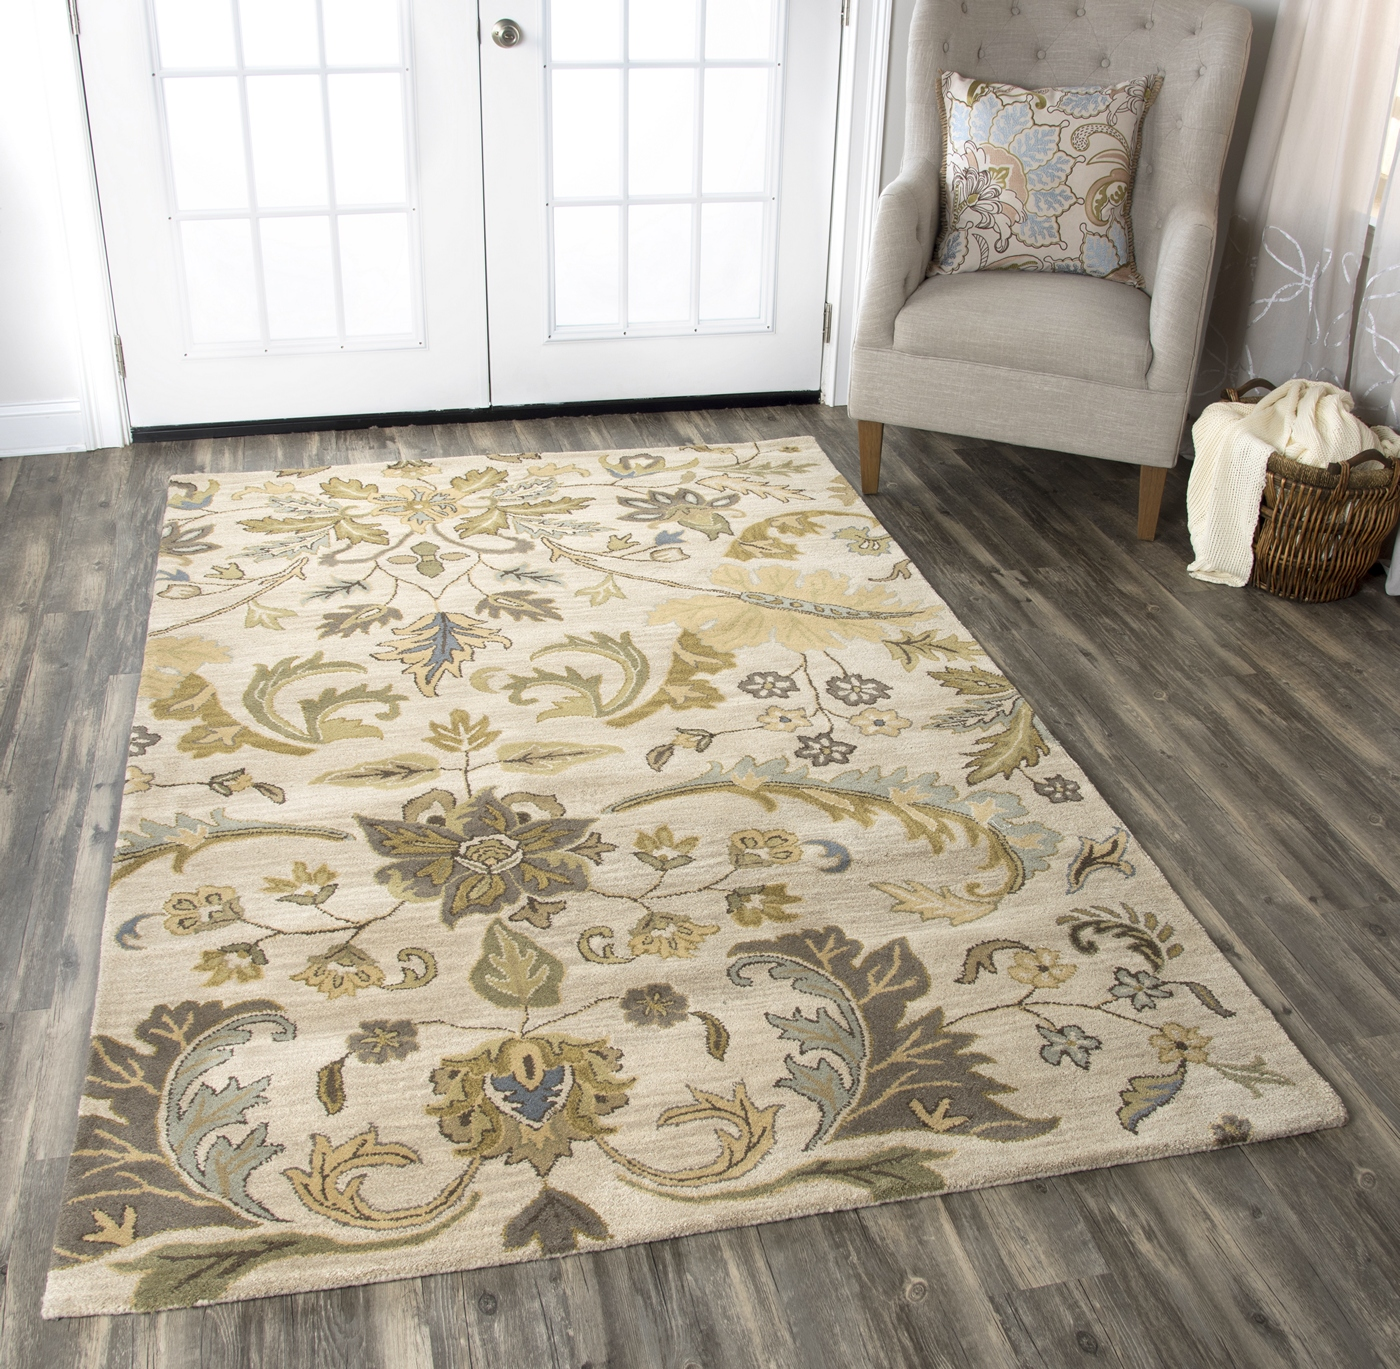 Volare Ornate Botanical Wool Area Rug In Ivory Sage Blue